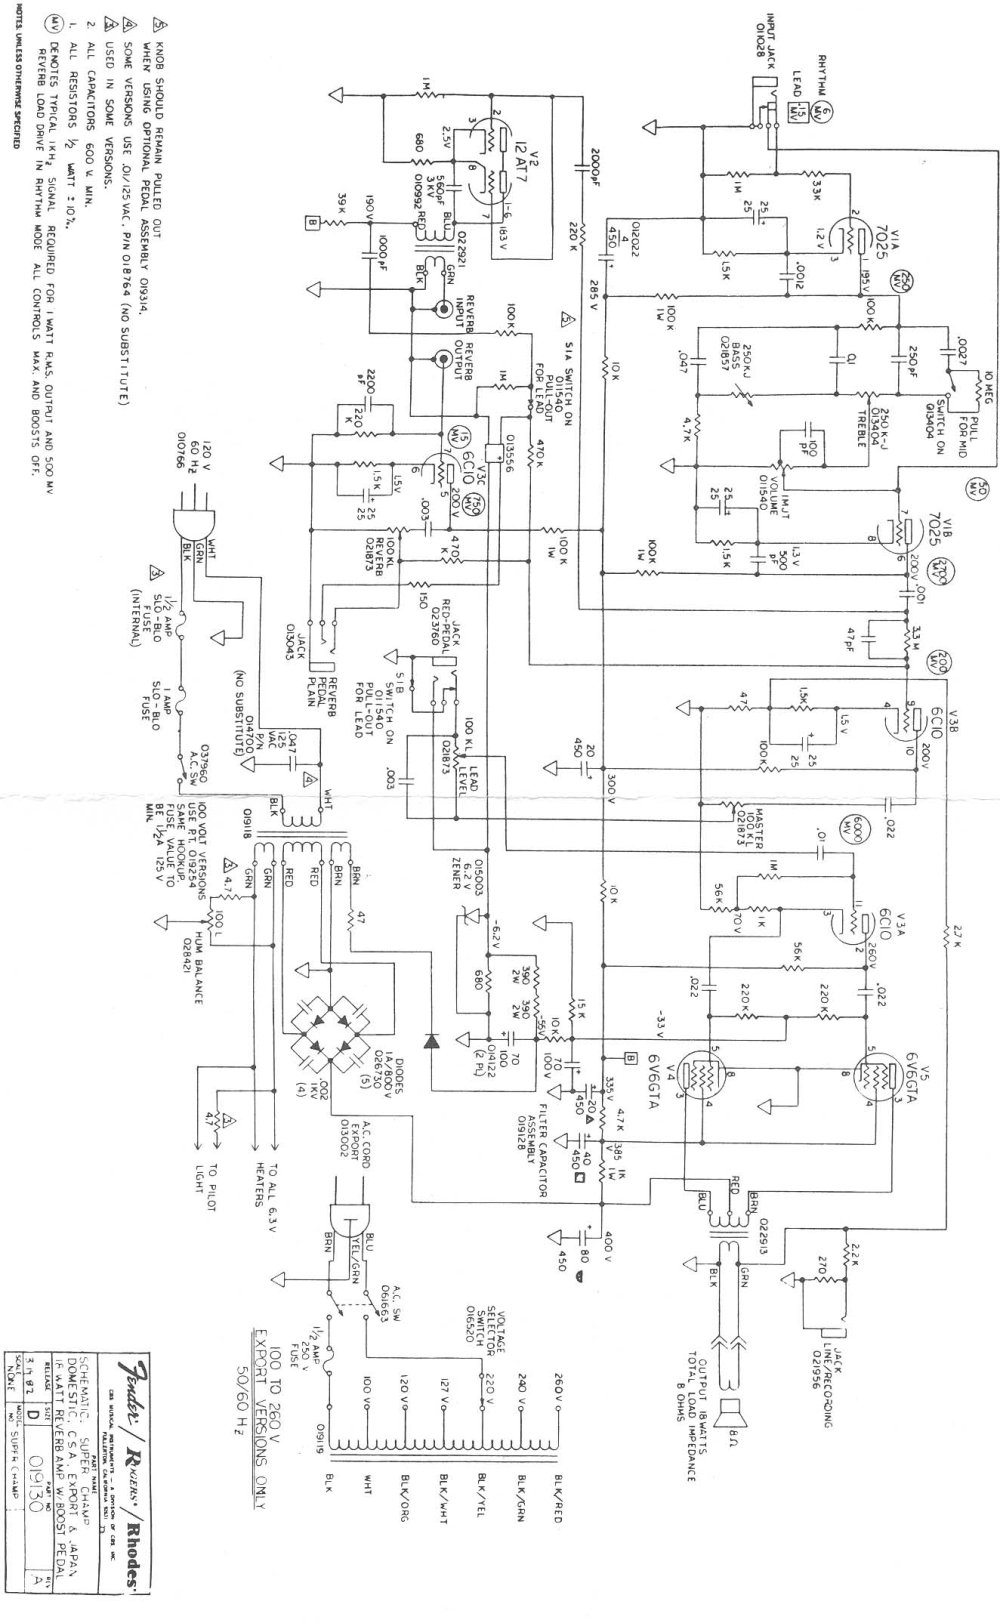 medium resolution of fender lead iii wiring diagram wiring diagram data schema fender stratocaster series wiring diagram fender lead